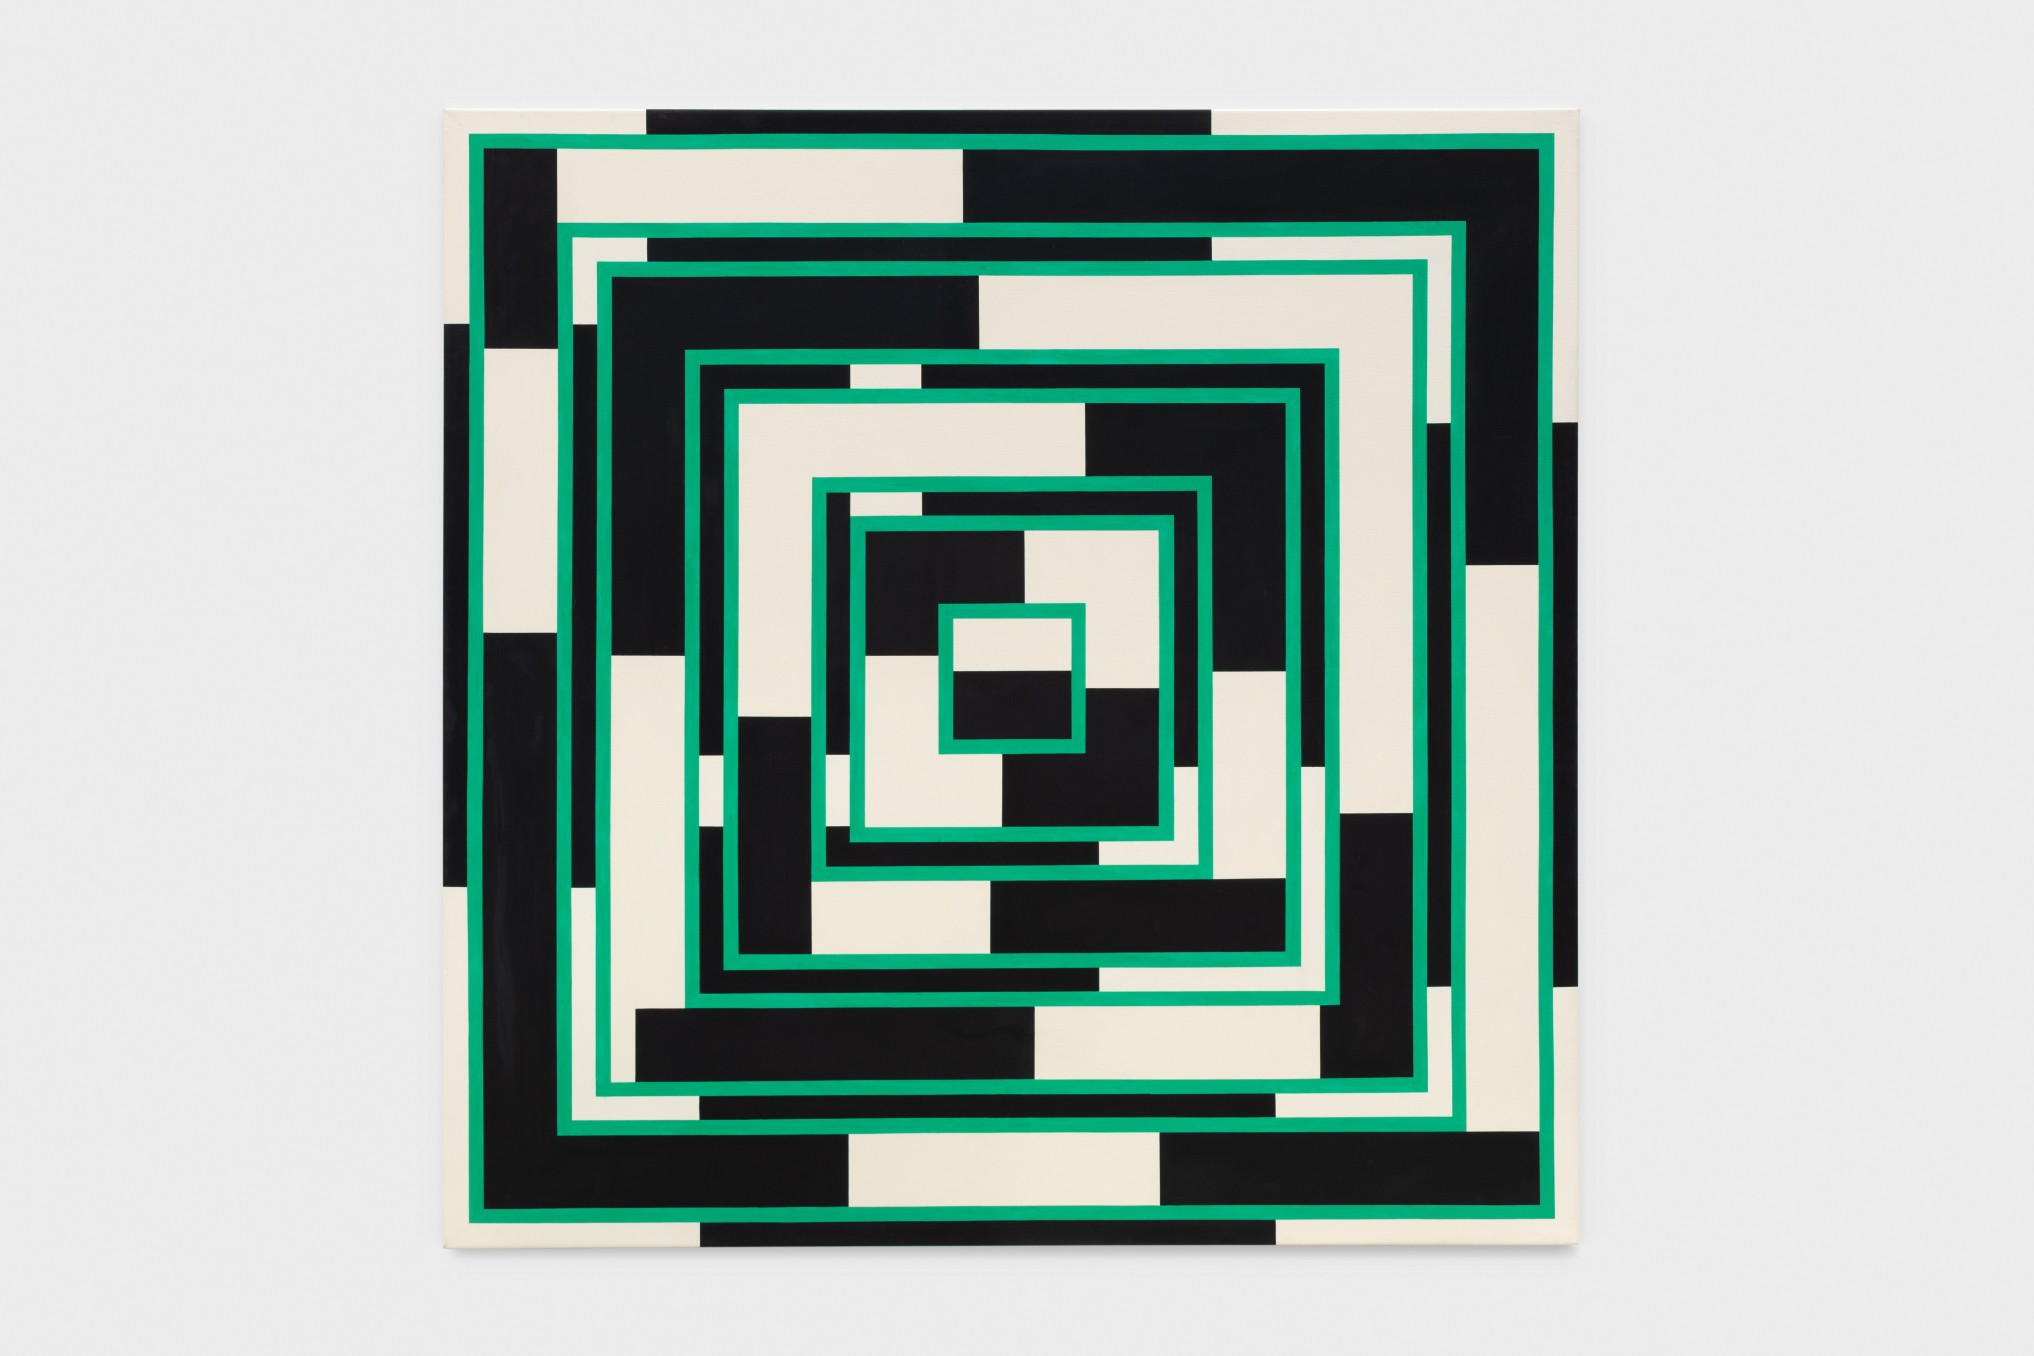 Mary Webb Cream, black and emerald, 1972 Oil on canvas 190.5 x 190.5 cm 75 x 75 in